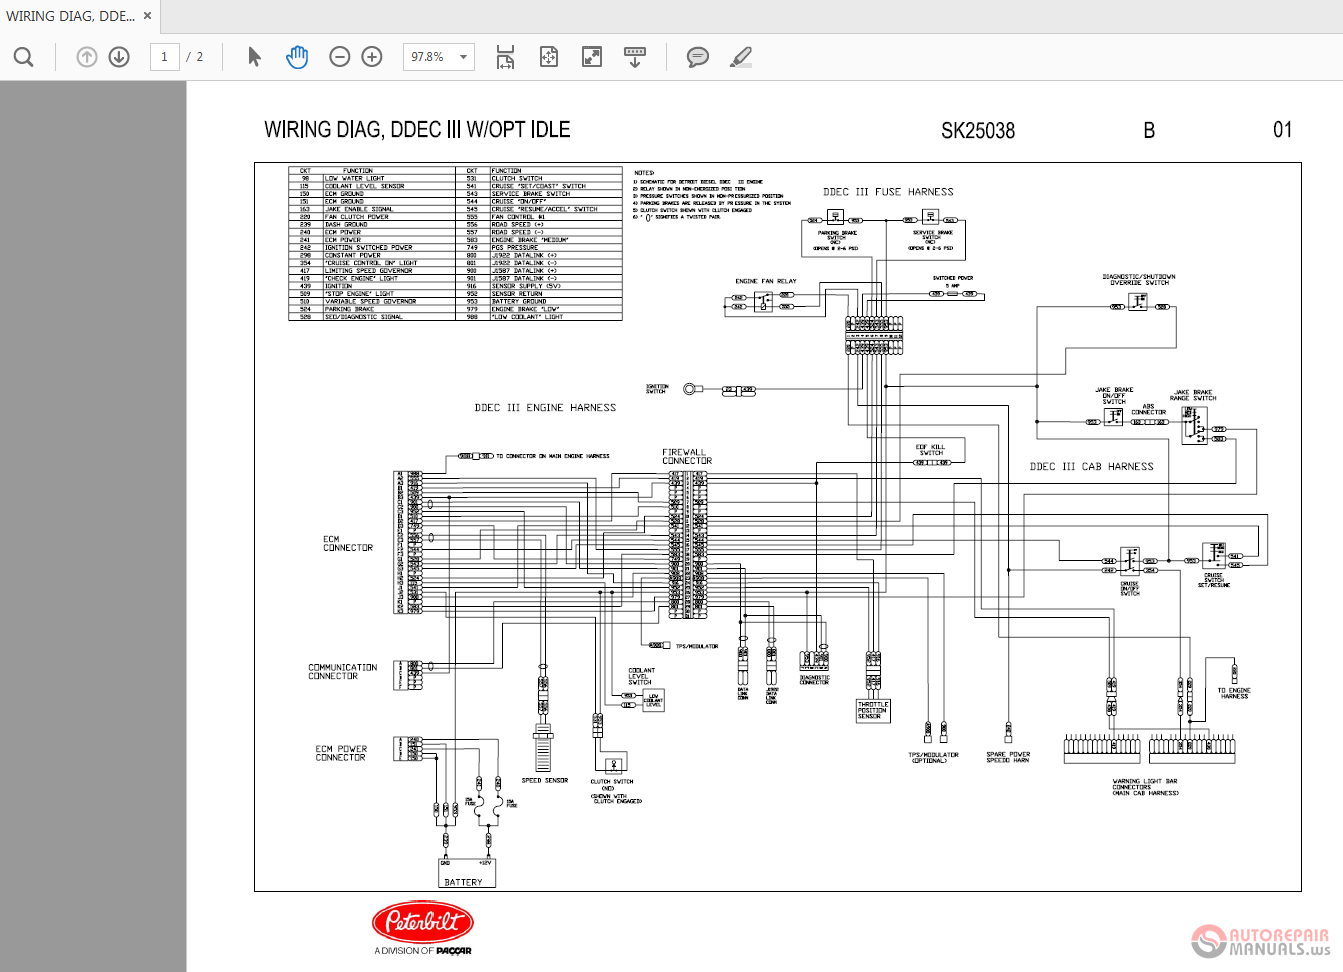 Wiring Diagram Ddec 11 Trusted Diagrams Detroit Diesel Schematics Iii Marine Schematic For 150cc Gy6 Scooter Source